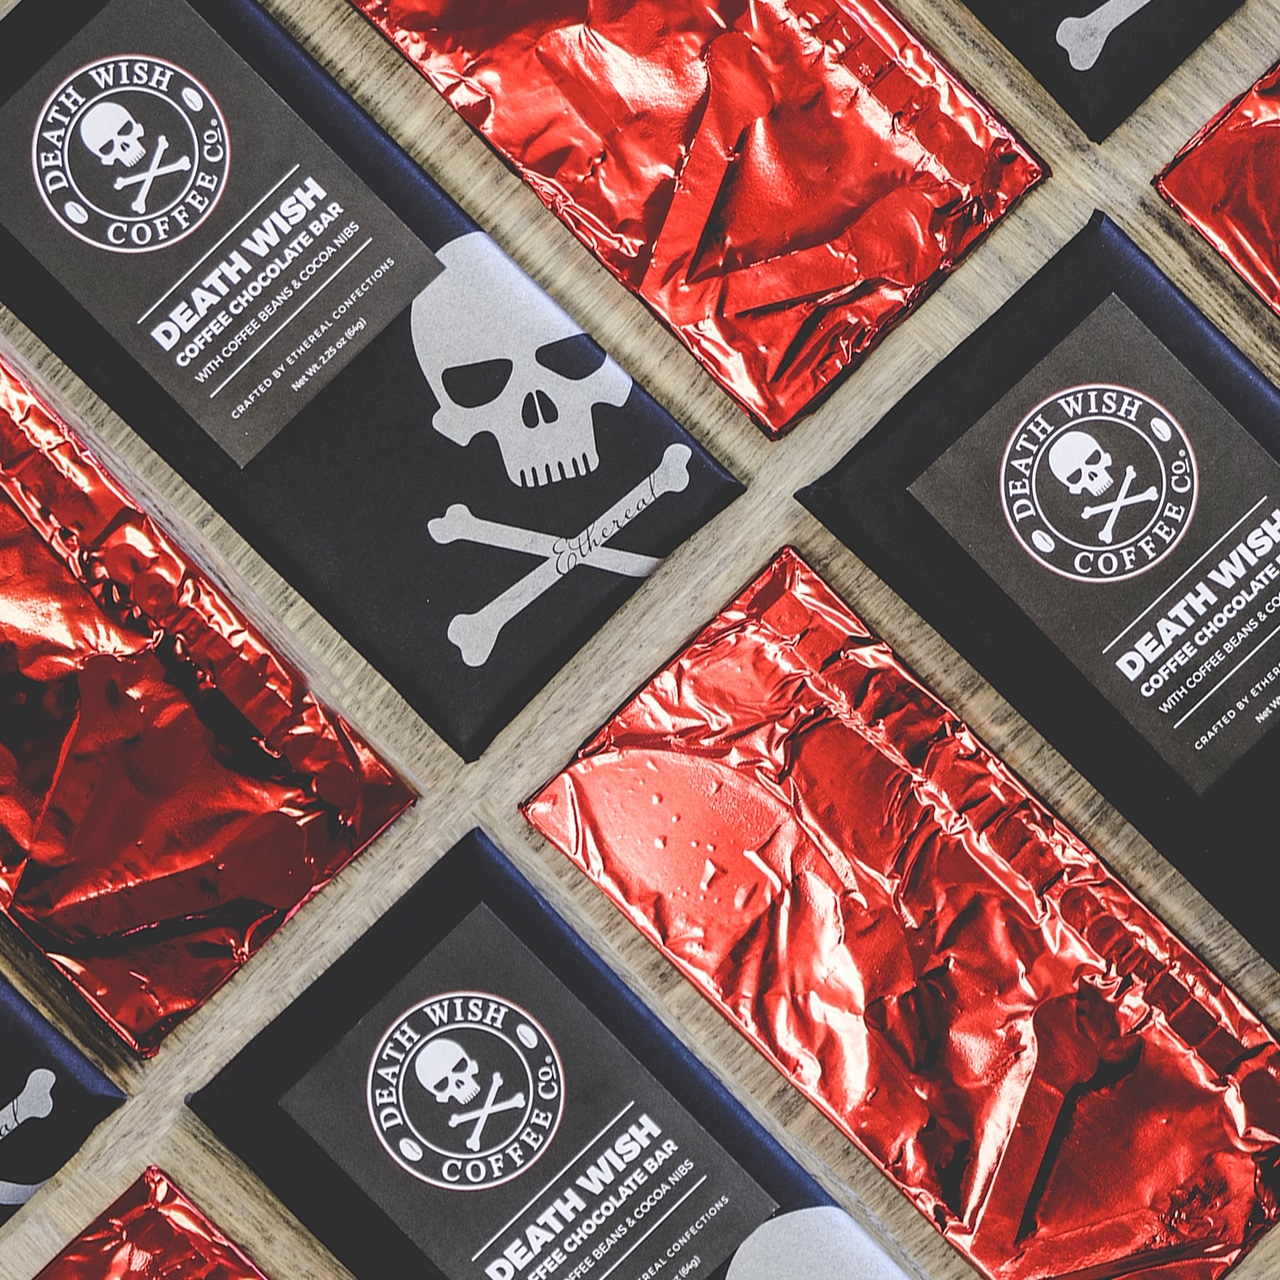 Death Wish Coffee chocolate bar 2.jpg